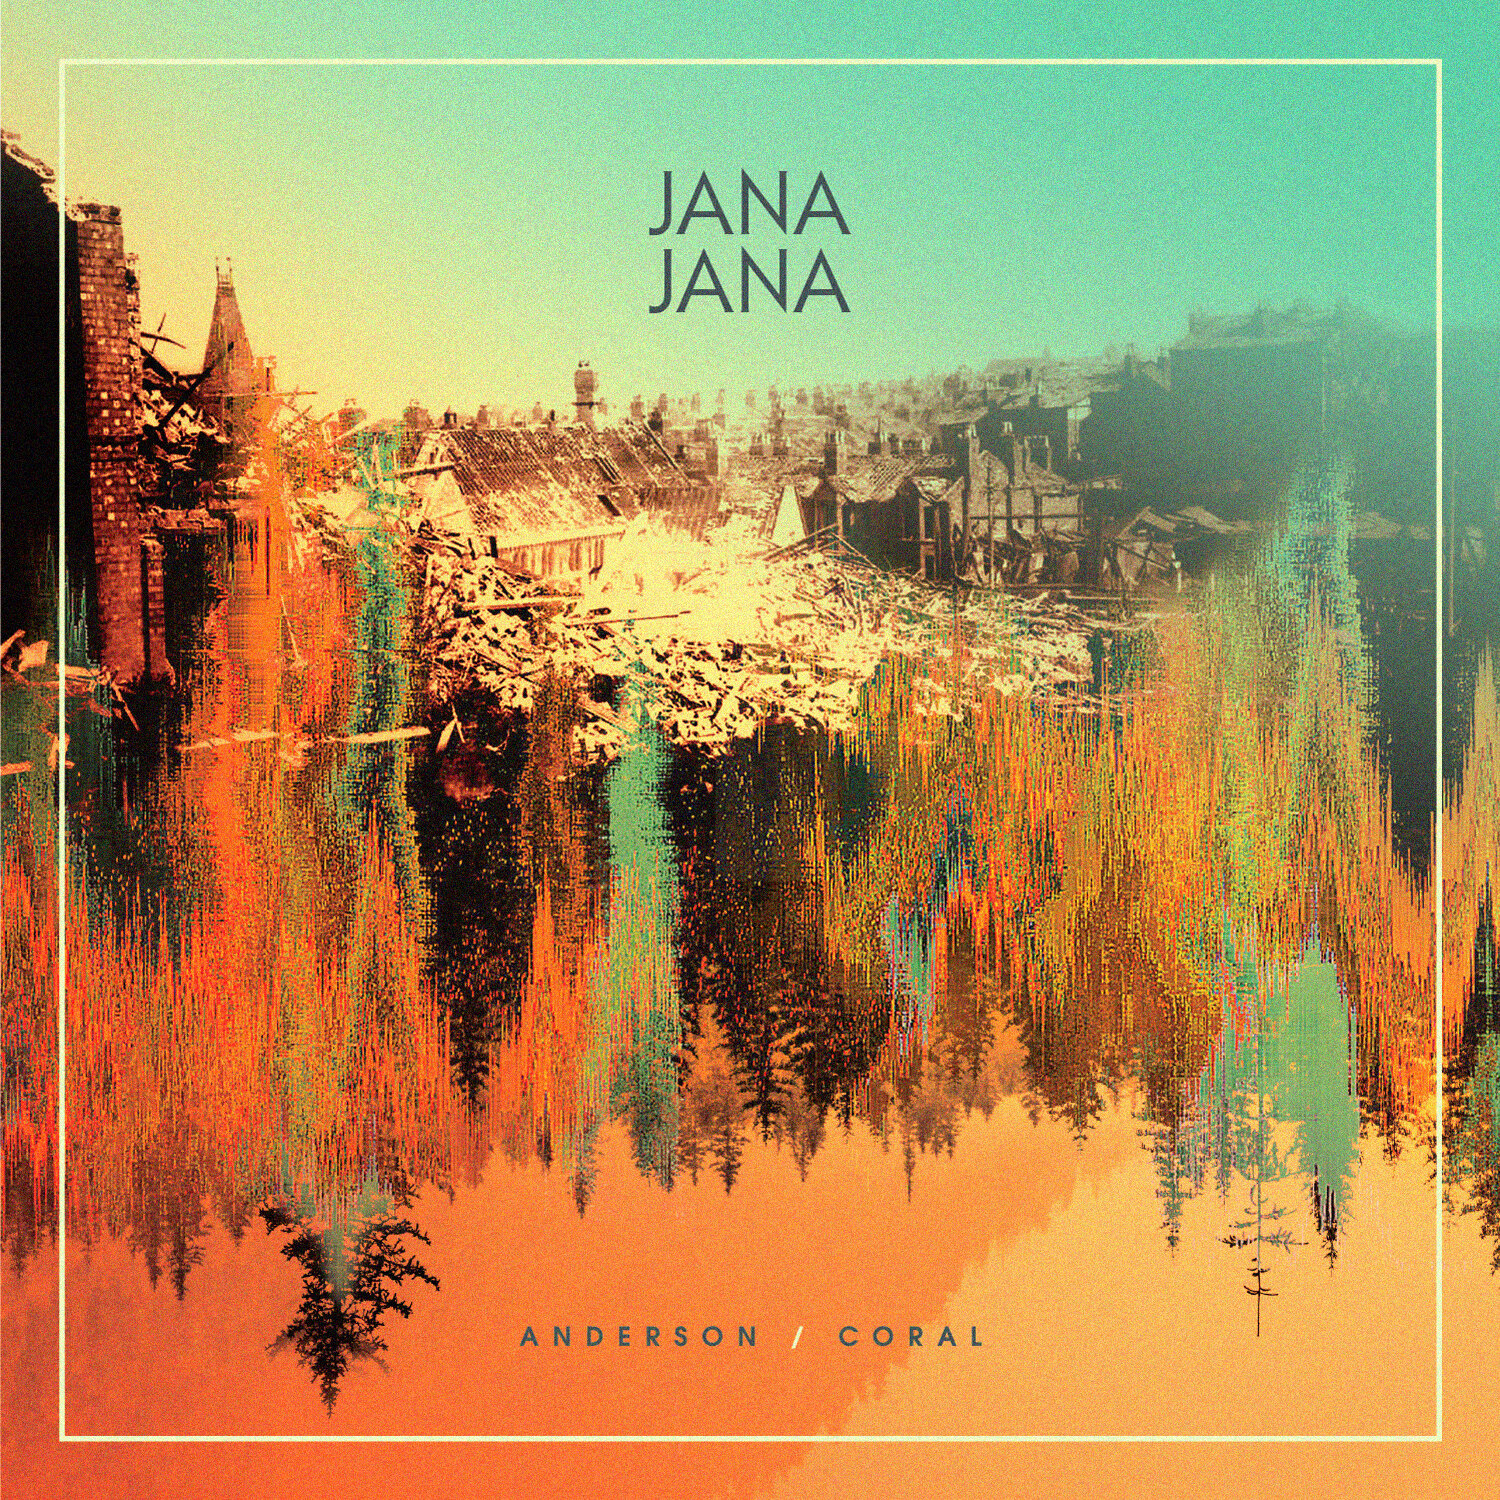 JANA-AnersonCoral-FinalCover-1500px.jpg